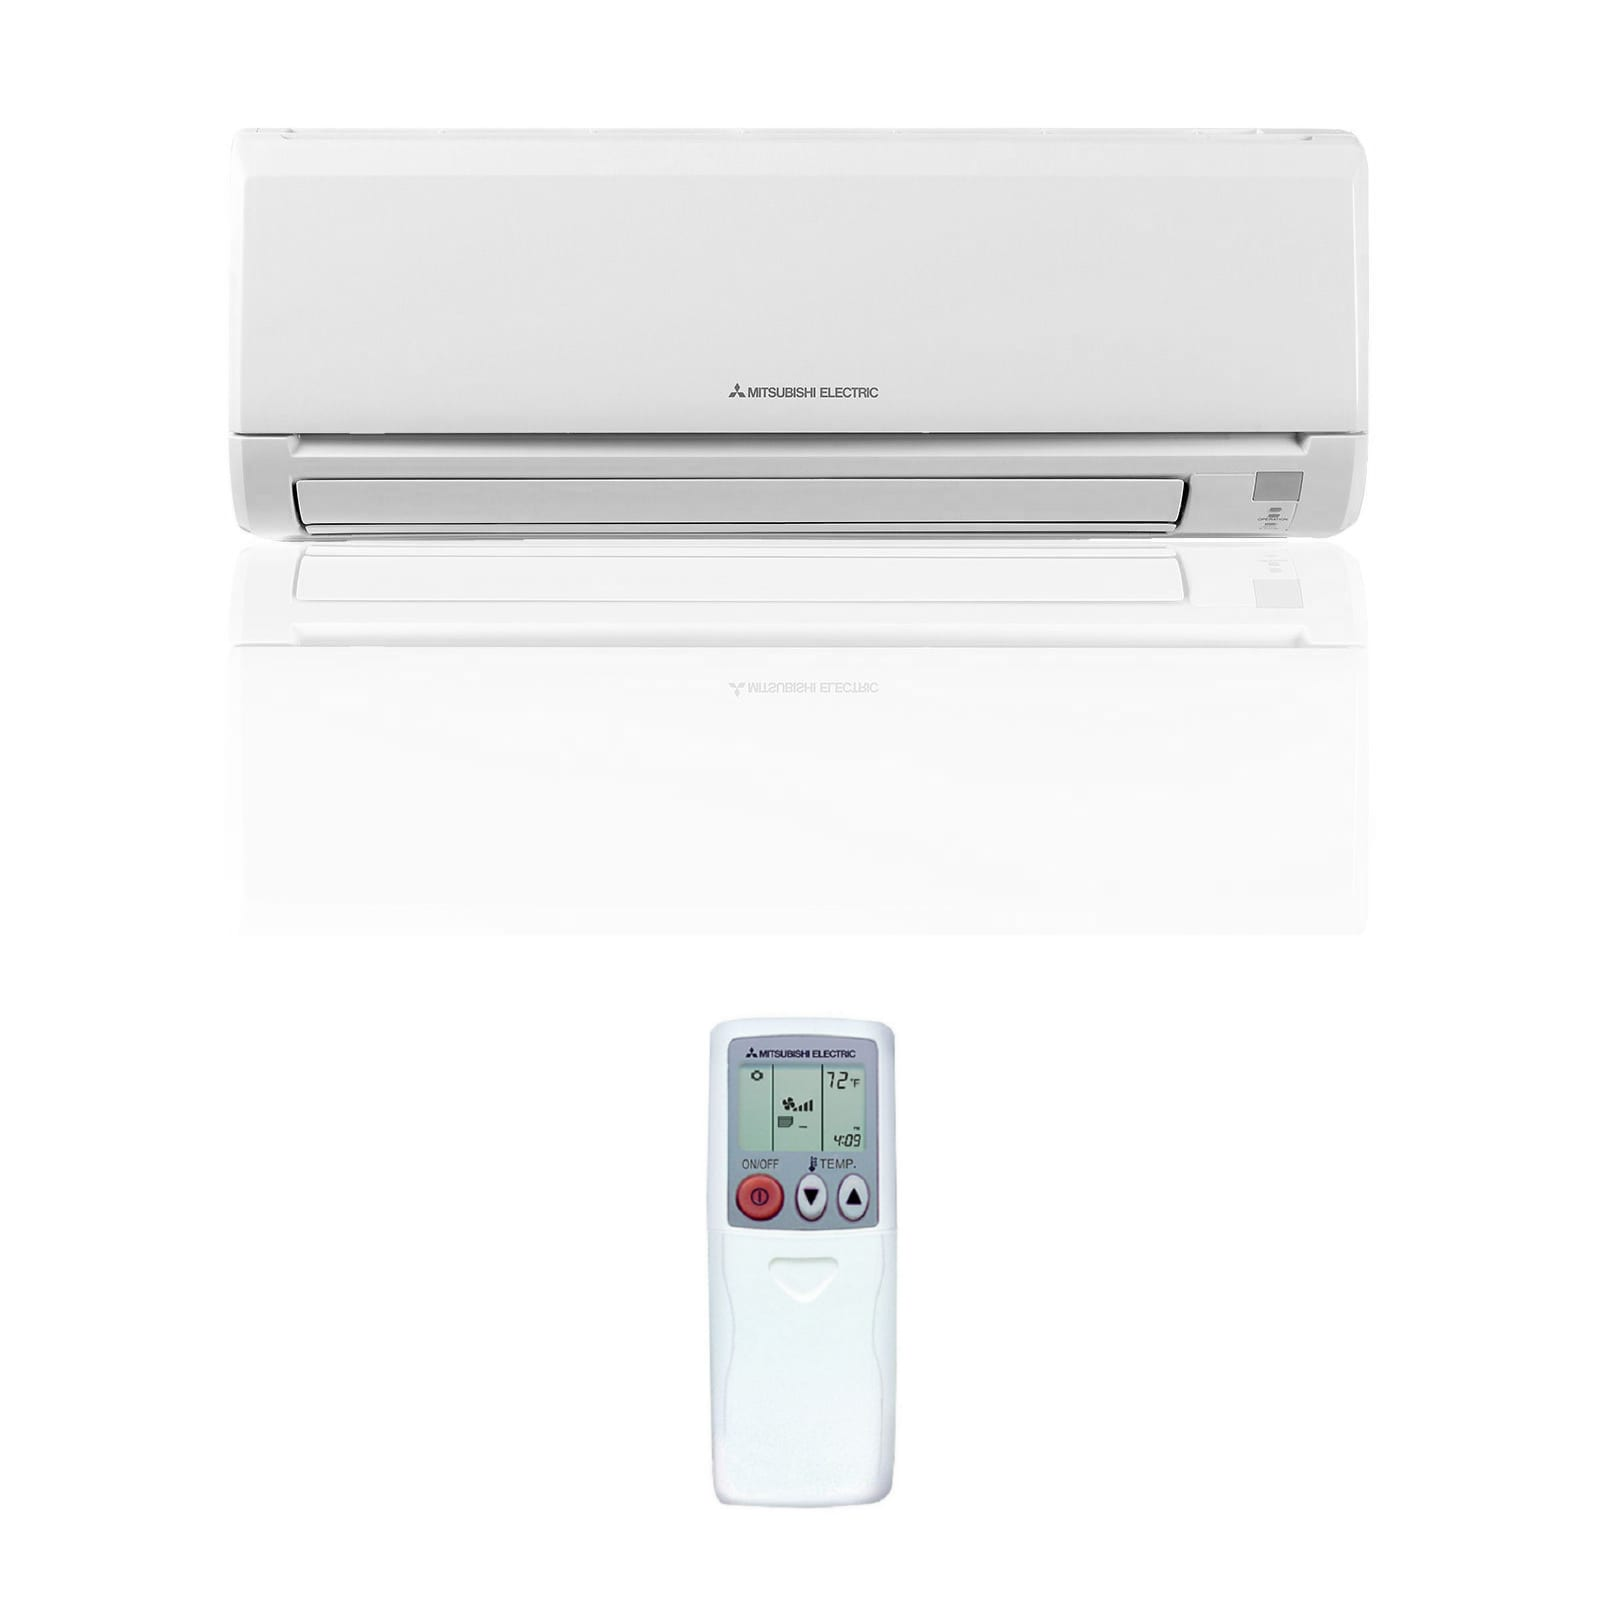 controller consumerreview srkzk industries air srkzmas incredible splendid magnificent in mbiadw conditioner split favorite mitsubishi gh heavy to classic mini wall conditioners